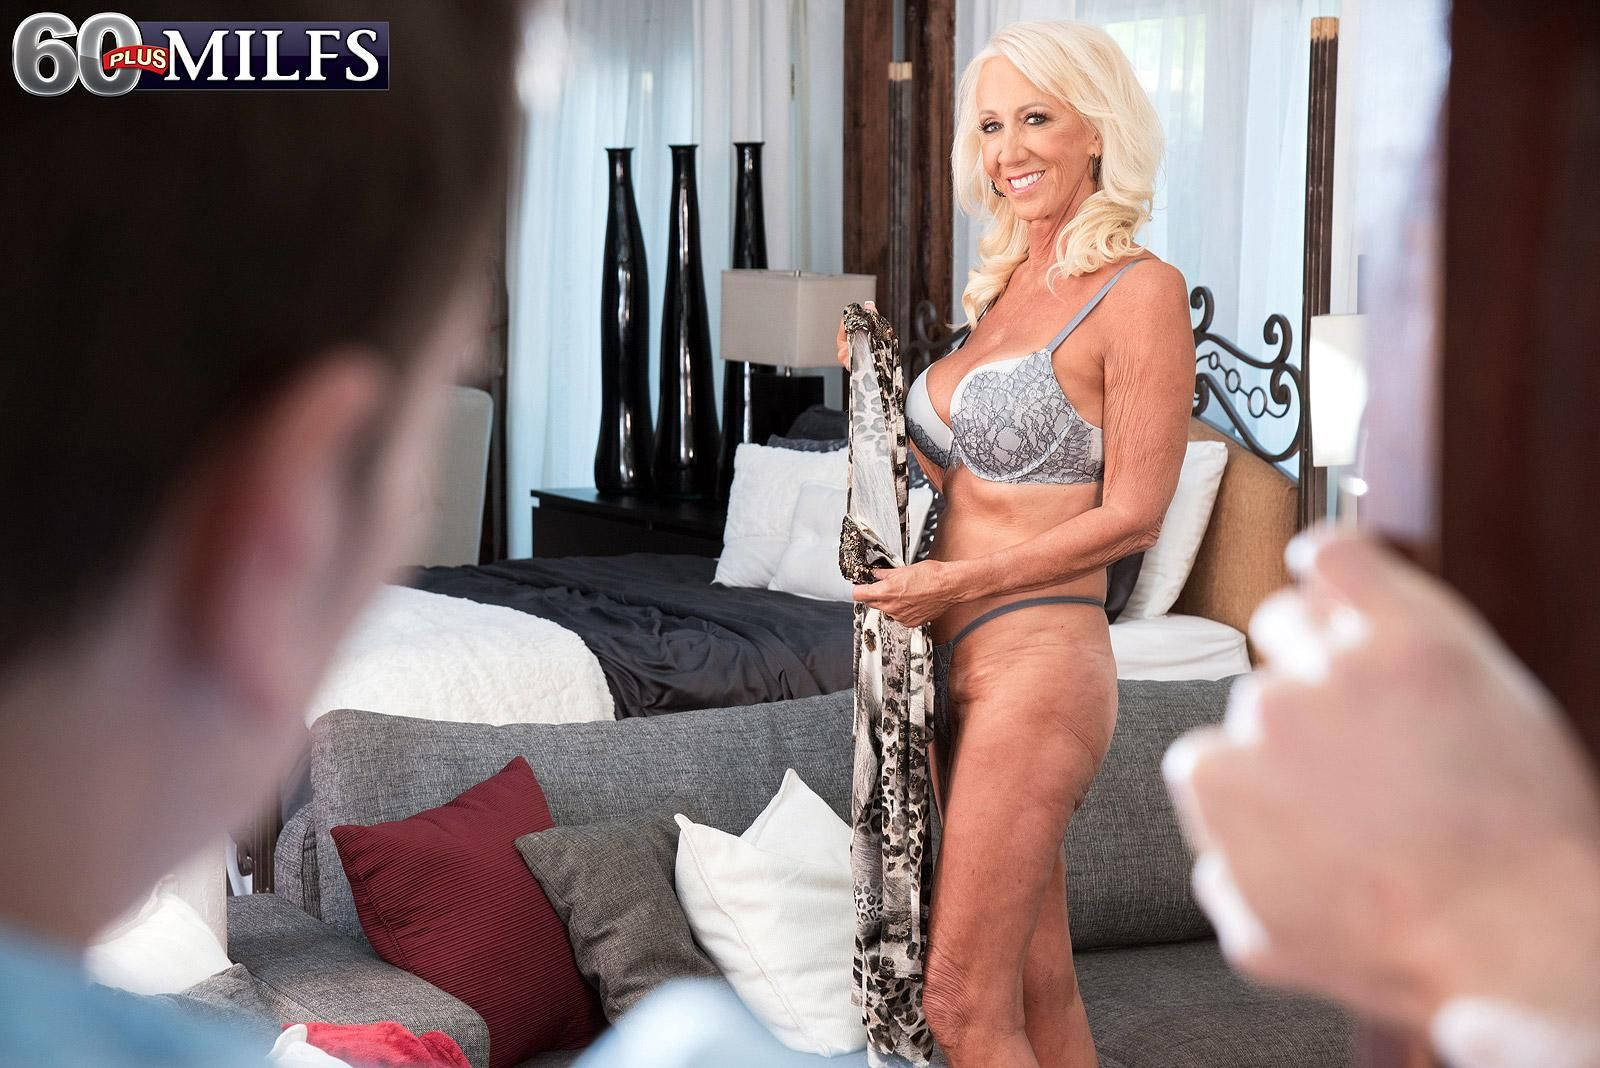 Hot GILF Madison Milstar seduces a young boy at the door in her bra and panties